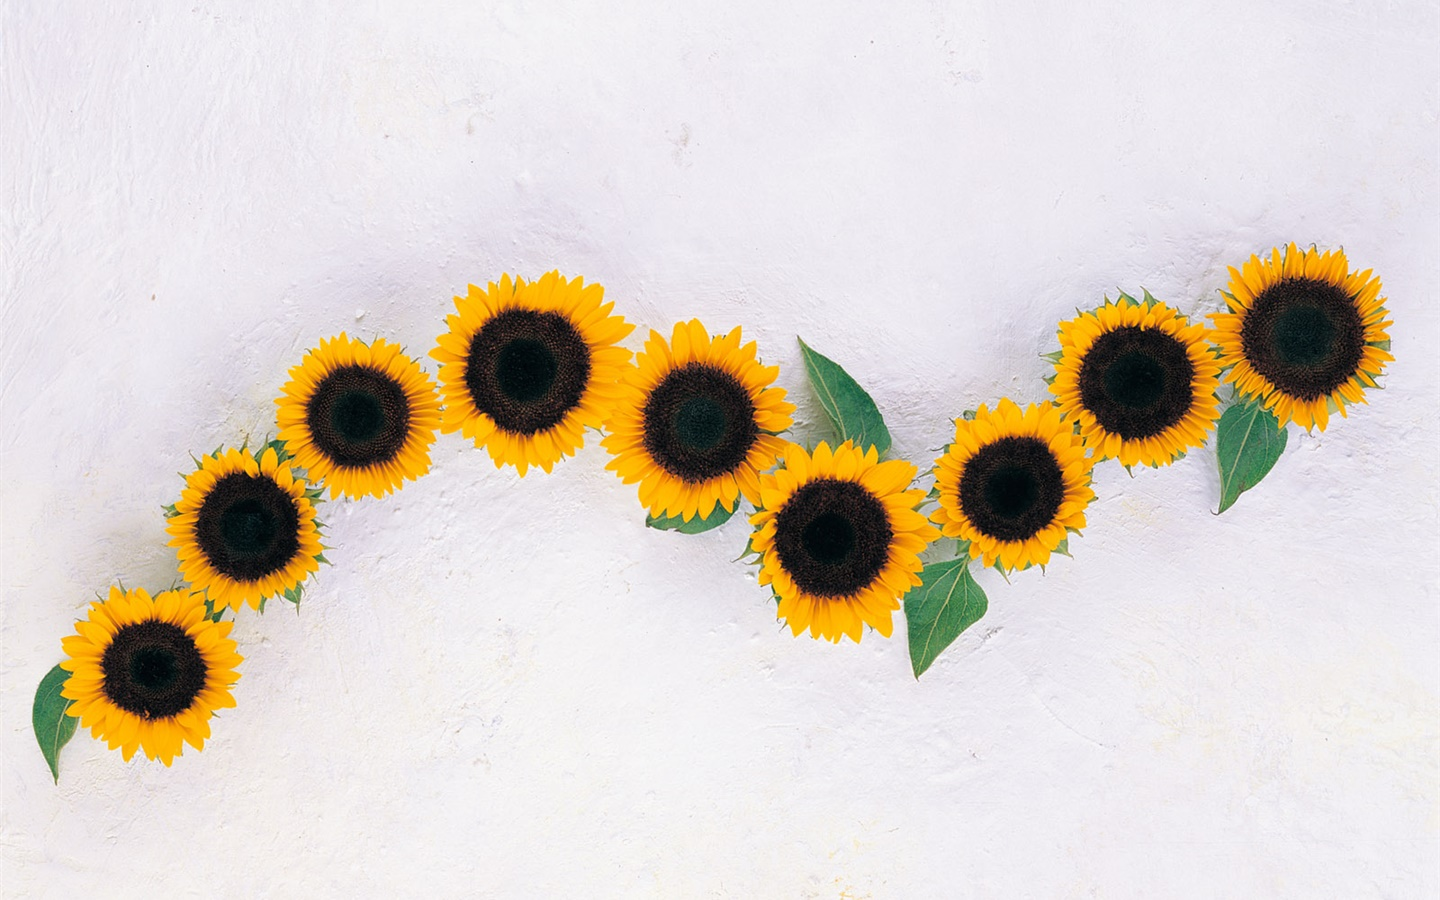 Sunflowers, white background 1440x900 wallpaper